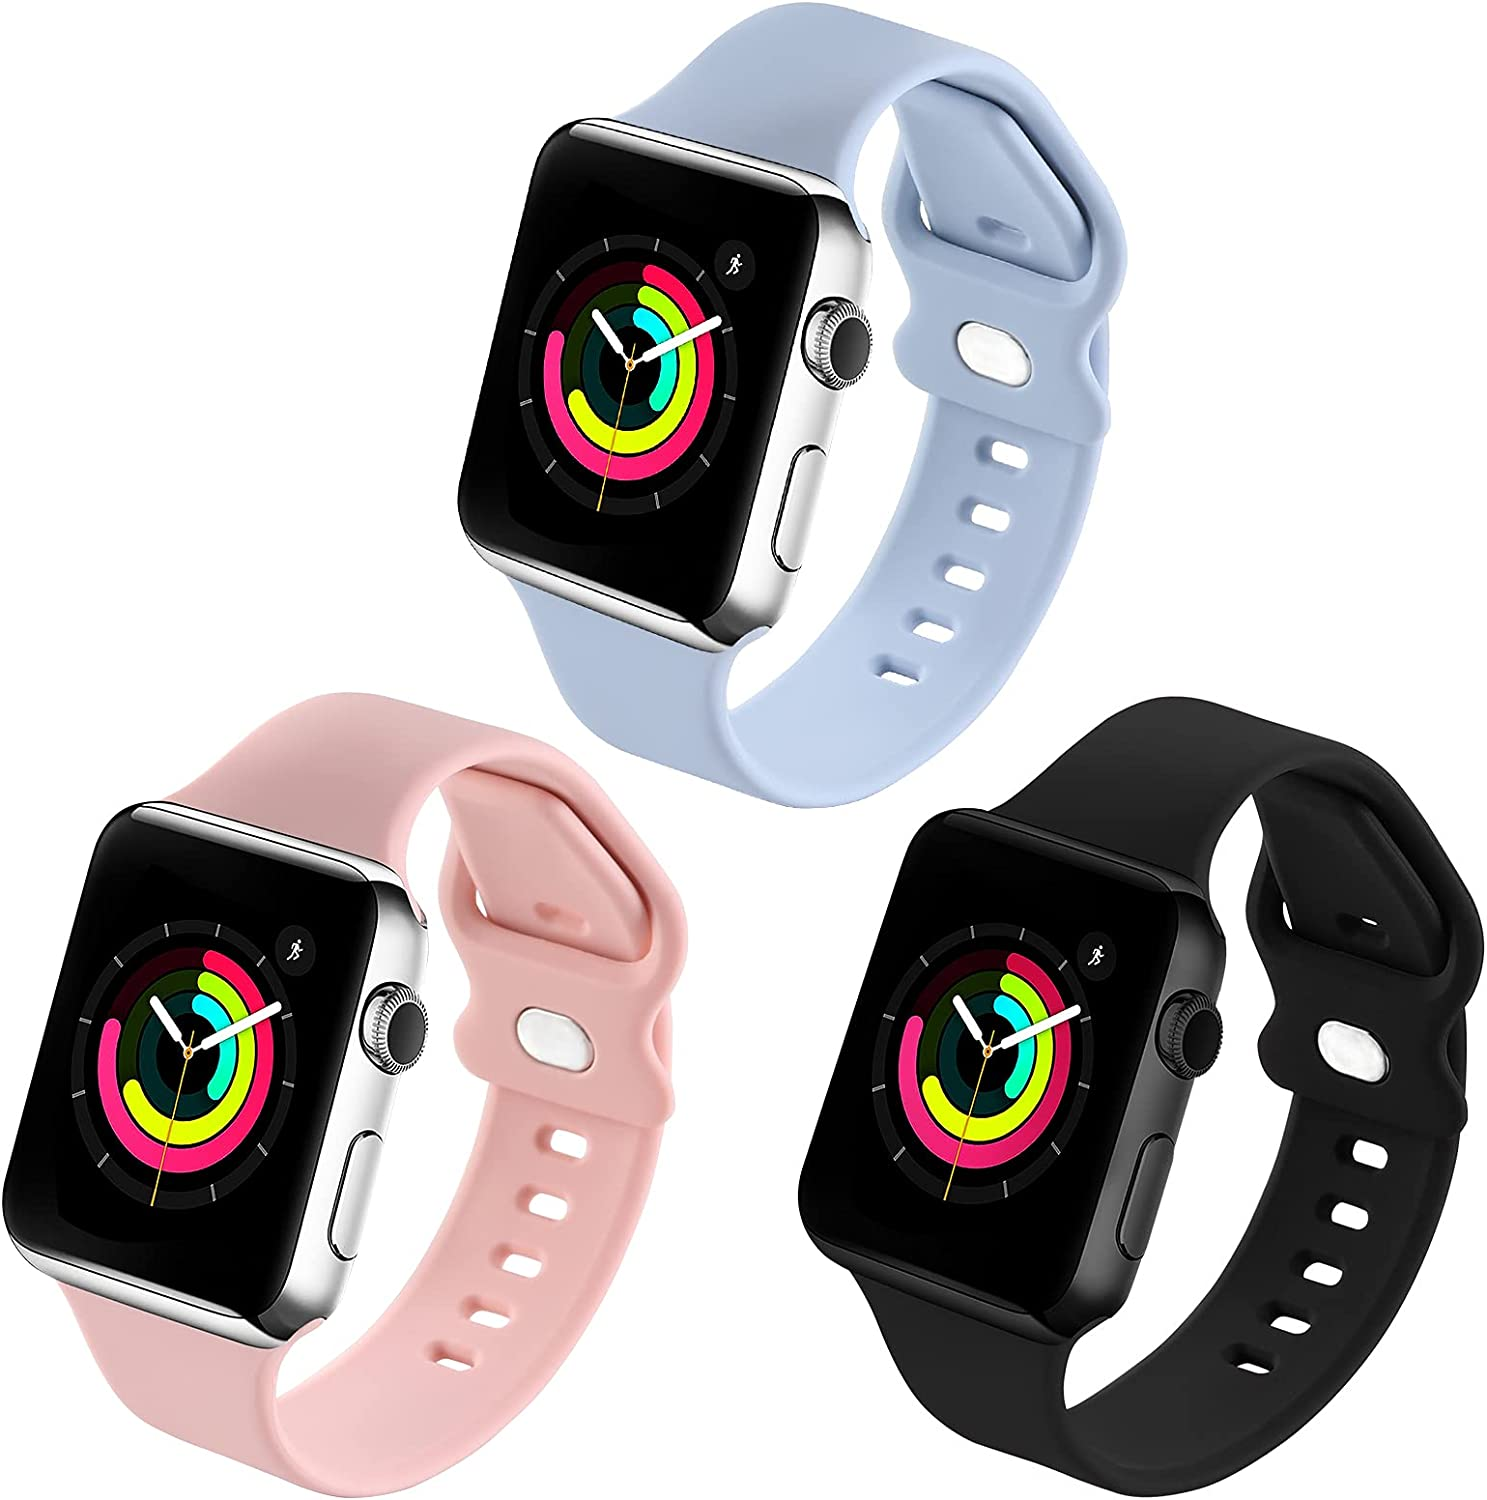 Sport Wristbands Compatible with Apple Watch Bands 38mm 40mm for Women Girls Men,3 Pack Soft Silicone Replacement Wristband for iWatch Series 6 5 4 3 2 1 SE Strap